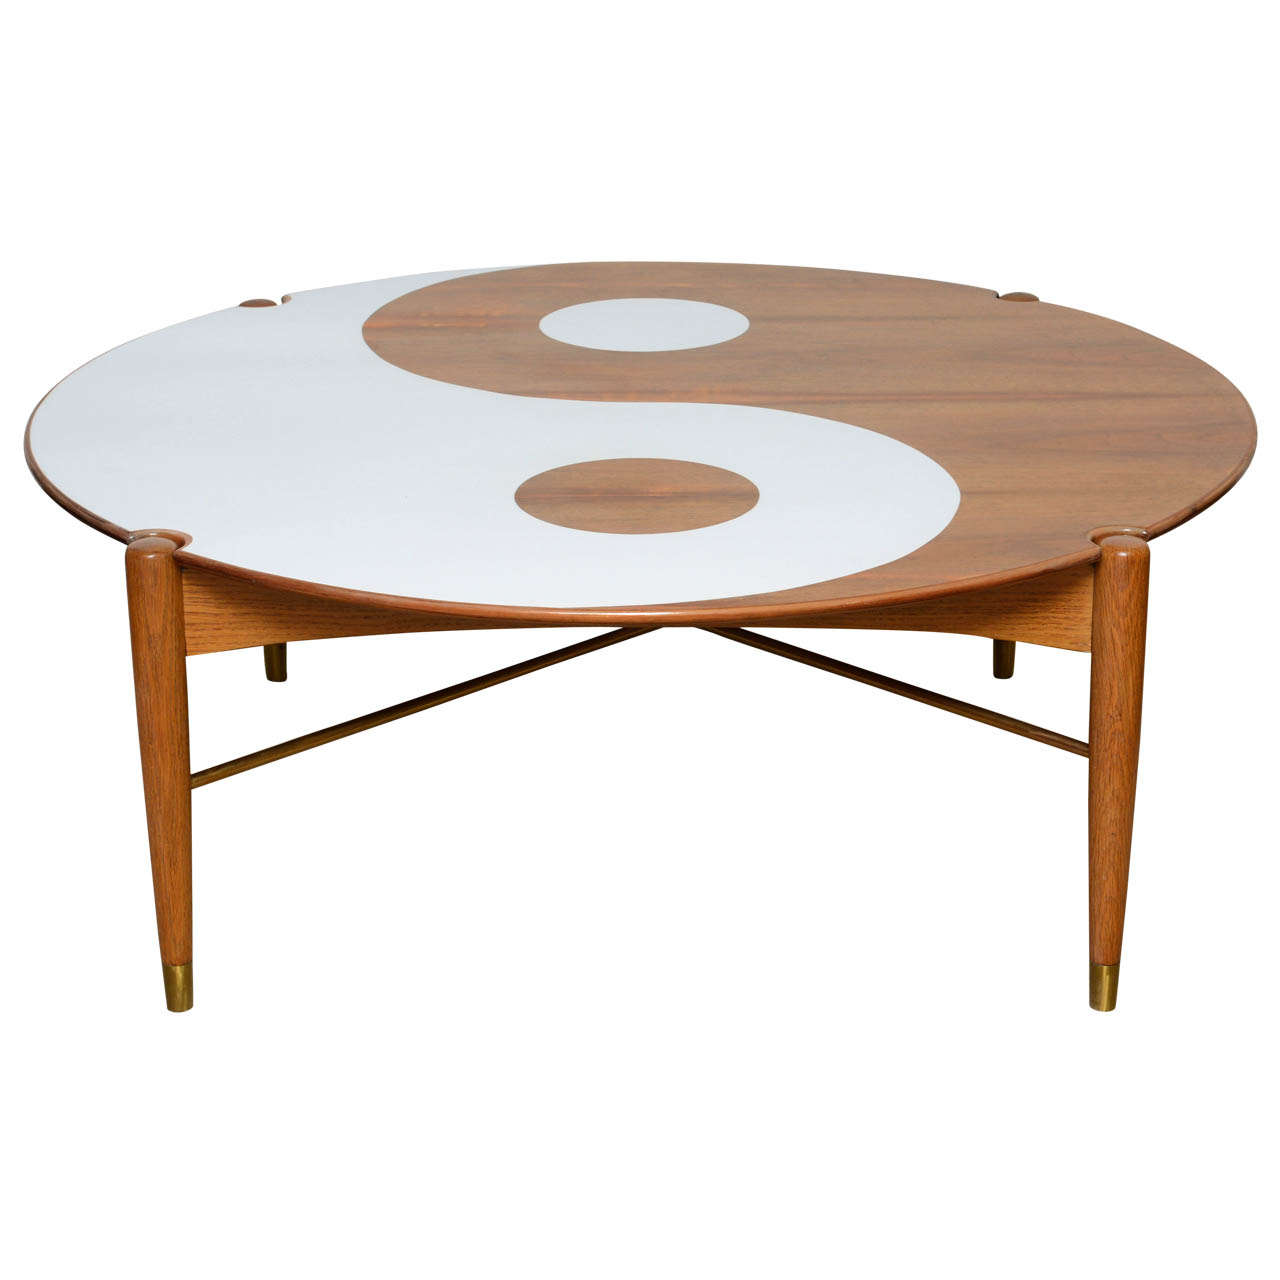 Yin and yang mid century modern round walnut swedish for Mid century modern coffee table